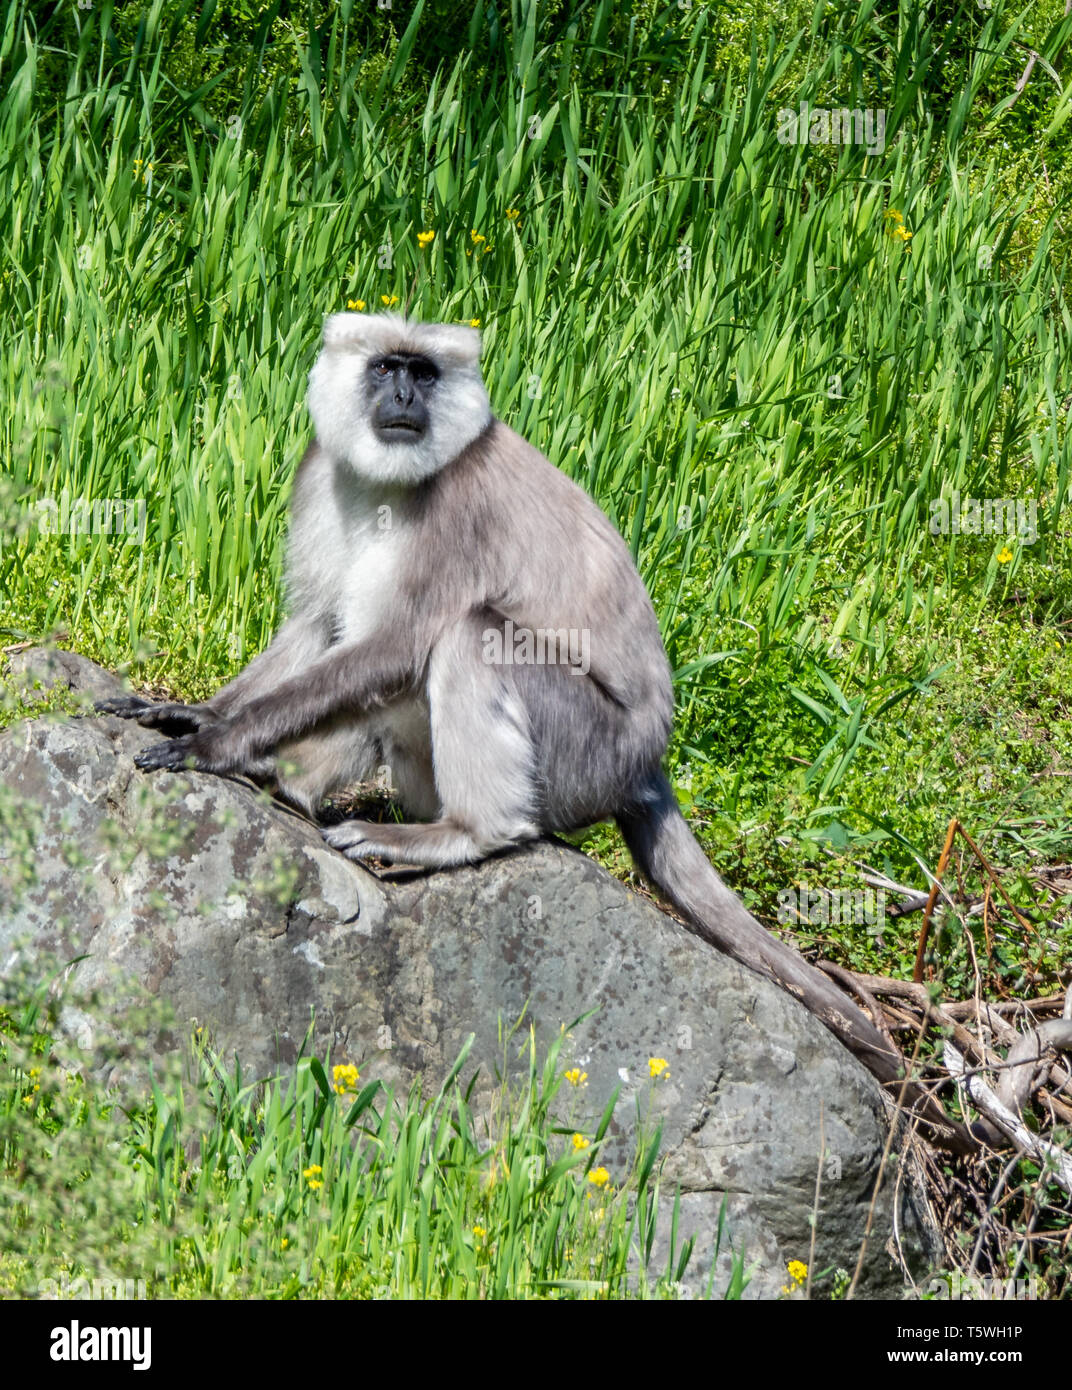 Male Nepal grey langur or black faced monkey Semnopithecus schistaceus foraging for food in the Pindar valley of the Indian Himalayas - Stock Image